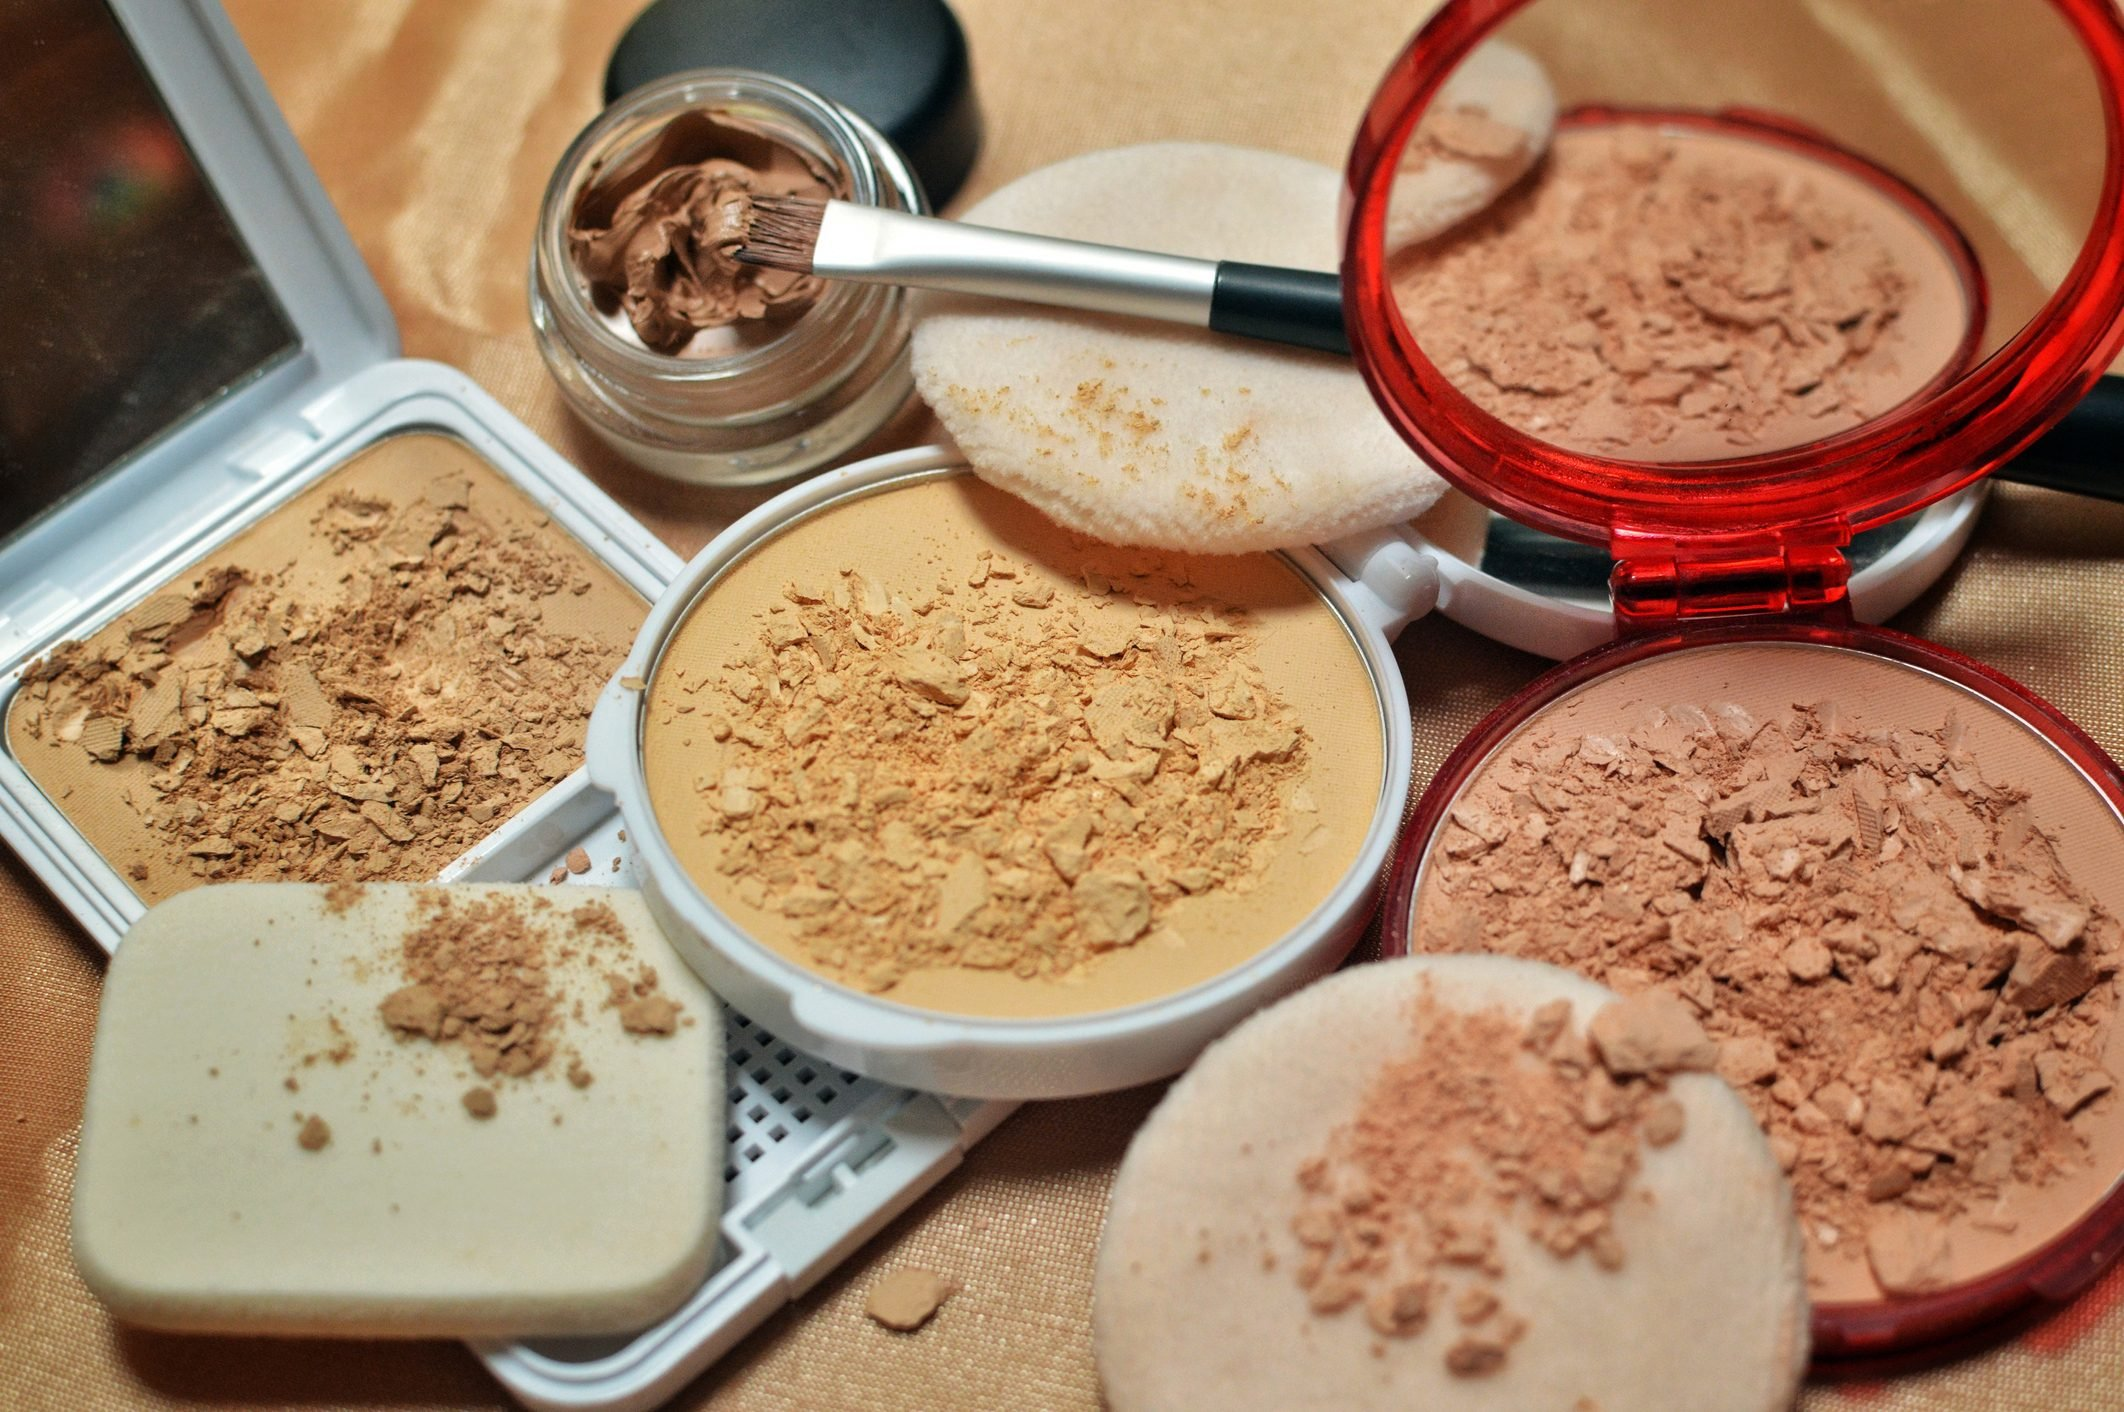 Make-up: compact powder and concealer